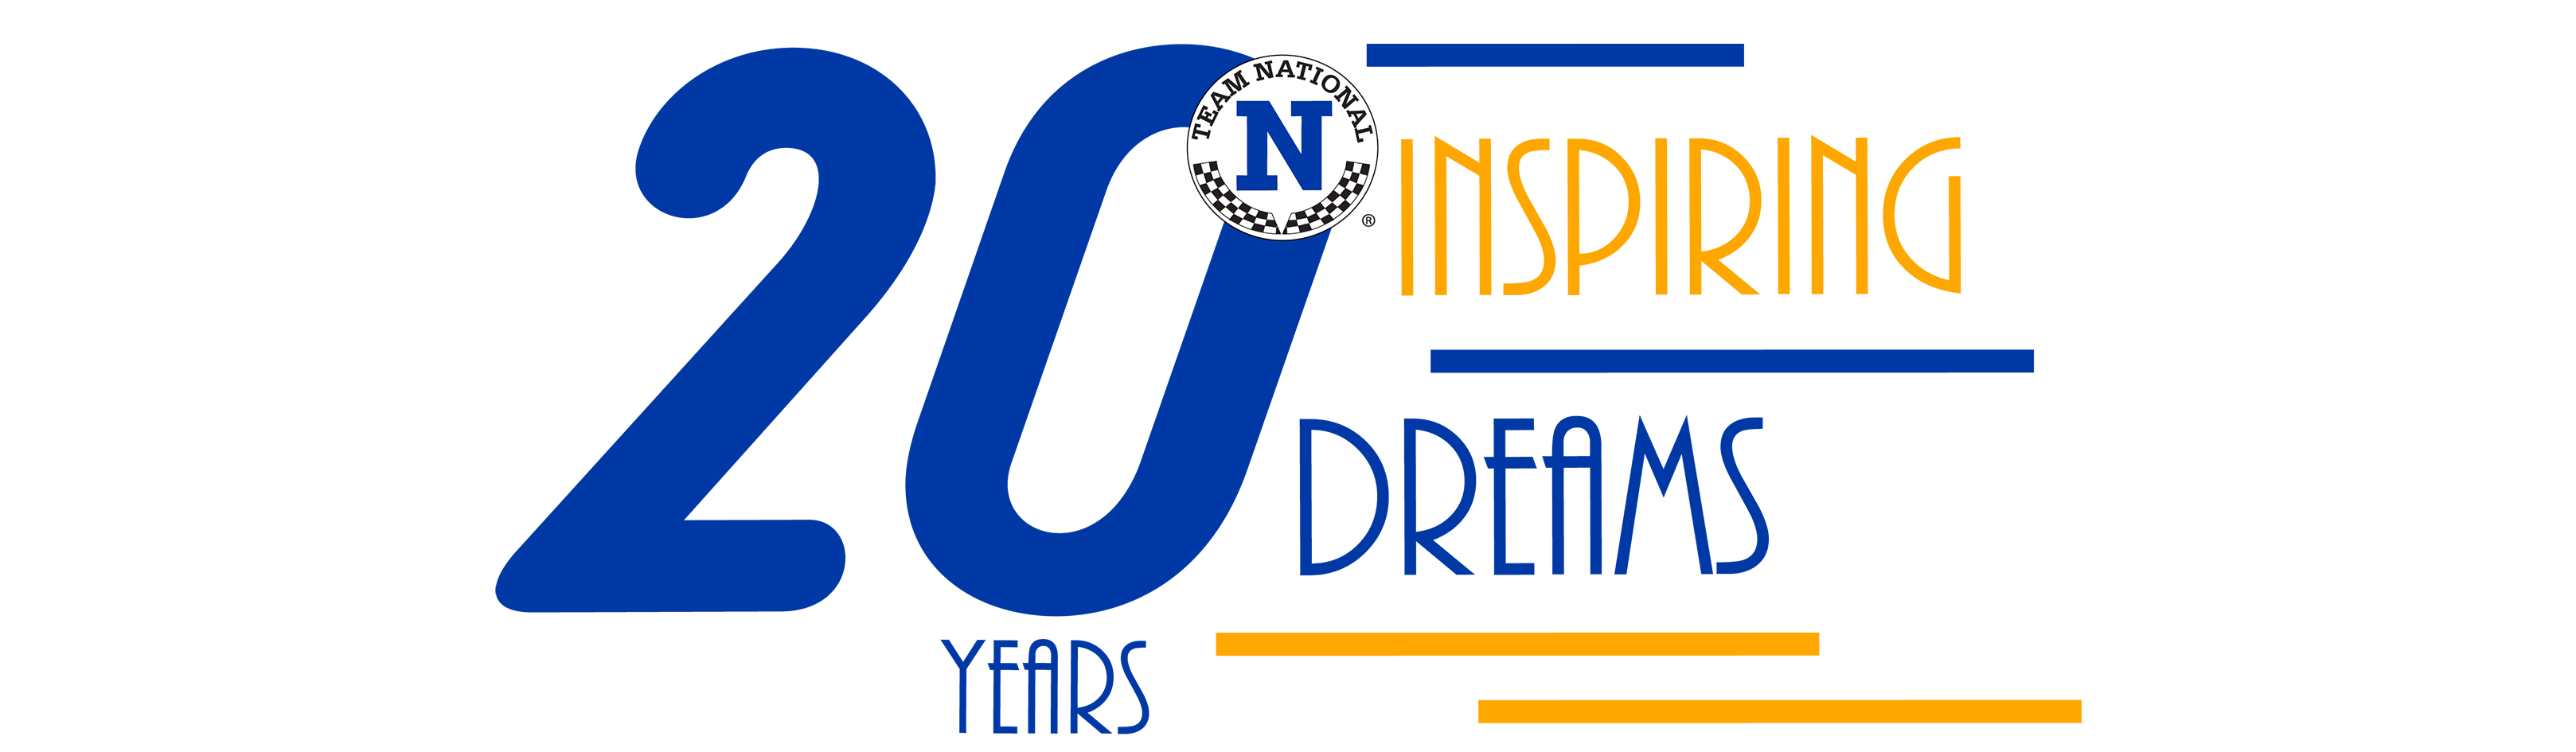 20 years Inspiring Dreams